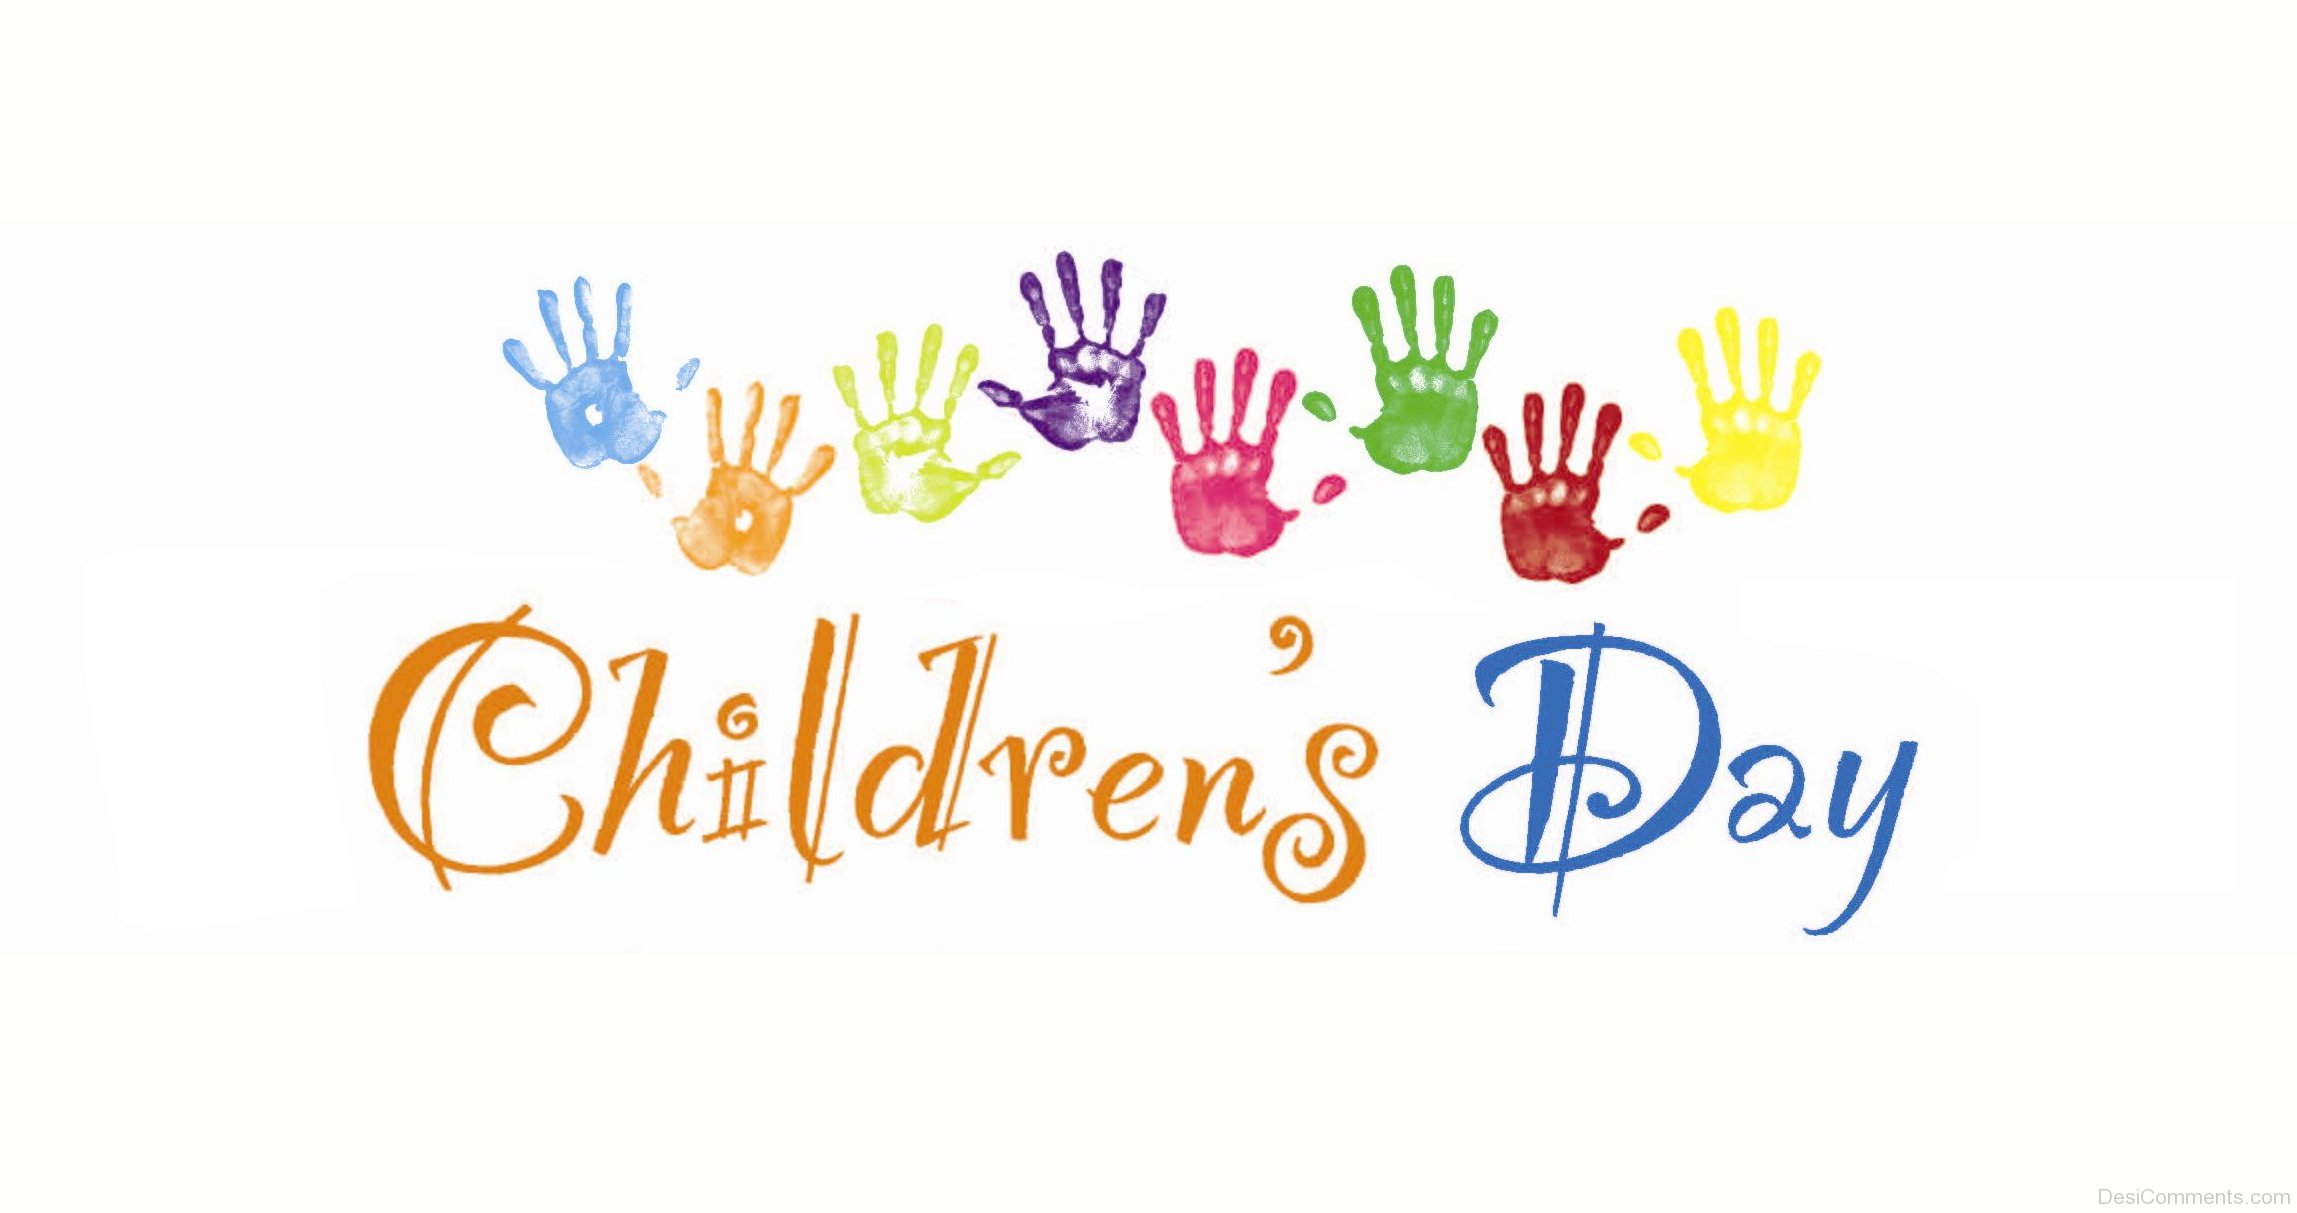 childrens day Children's day is about appreciation of our children it is an excellent opportunity to spend some more time them, talk and listen to them, praise and encourage their passions, and, finally, to show our love and affection.